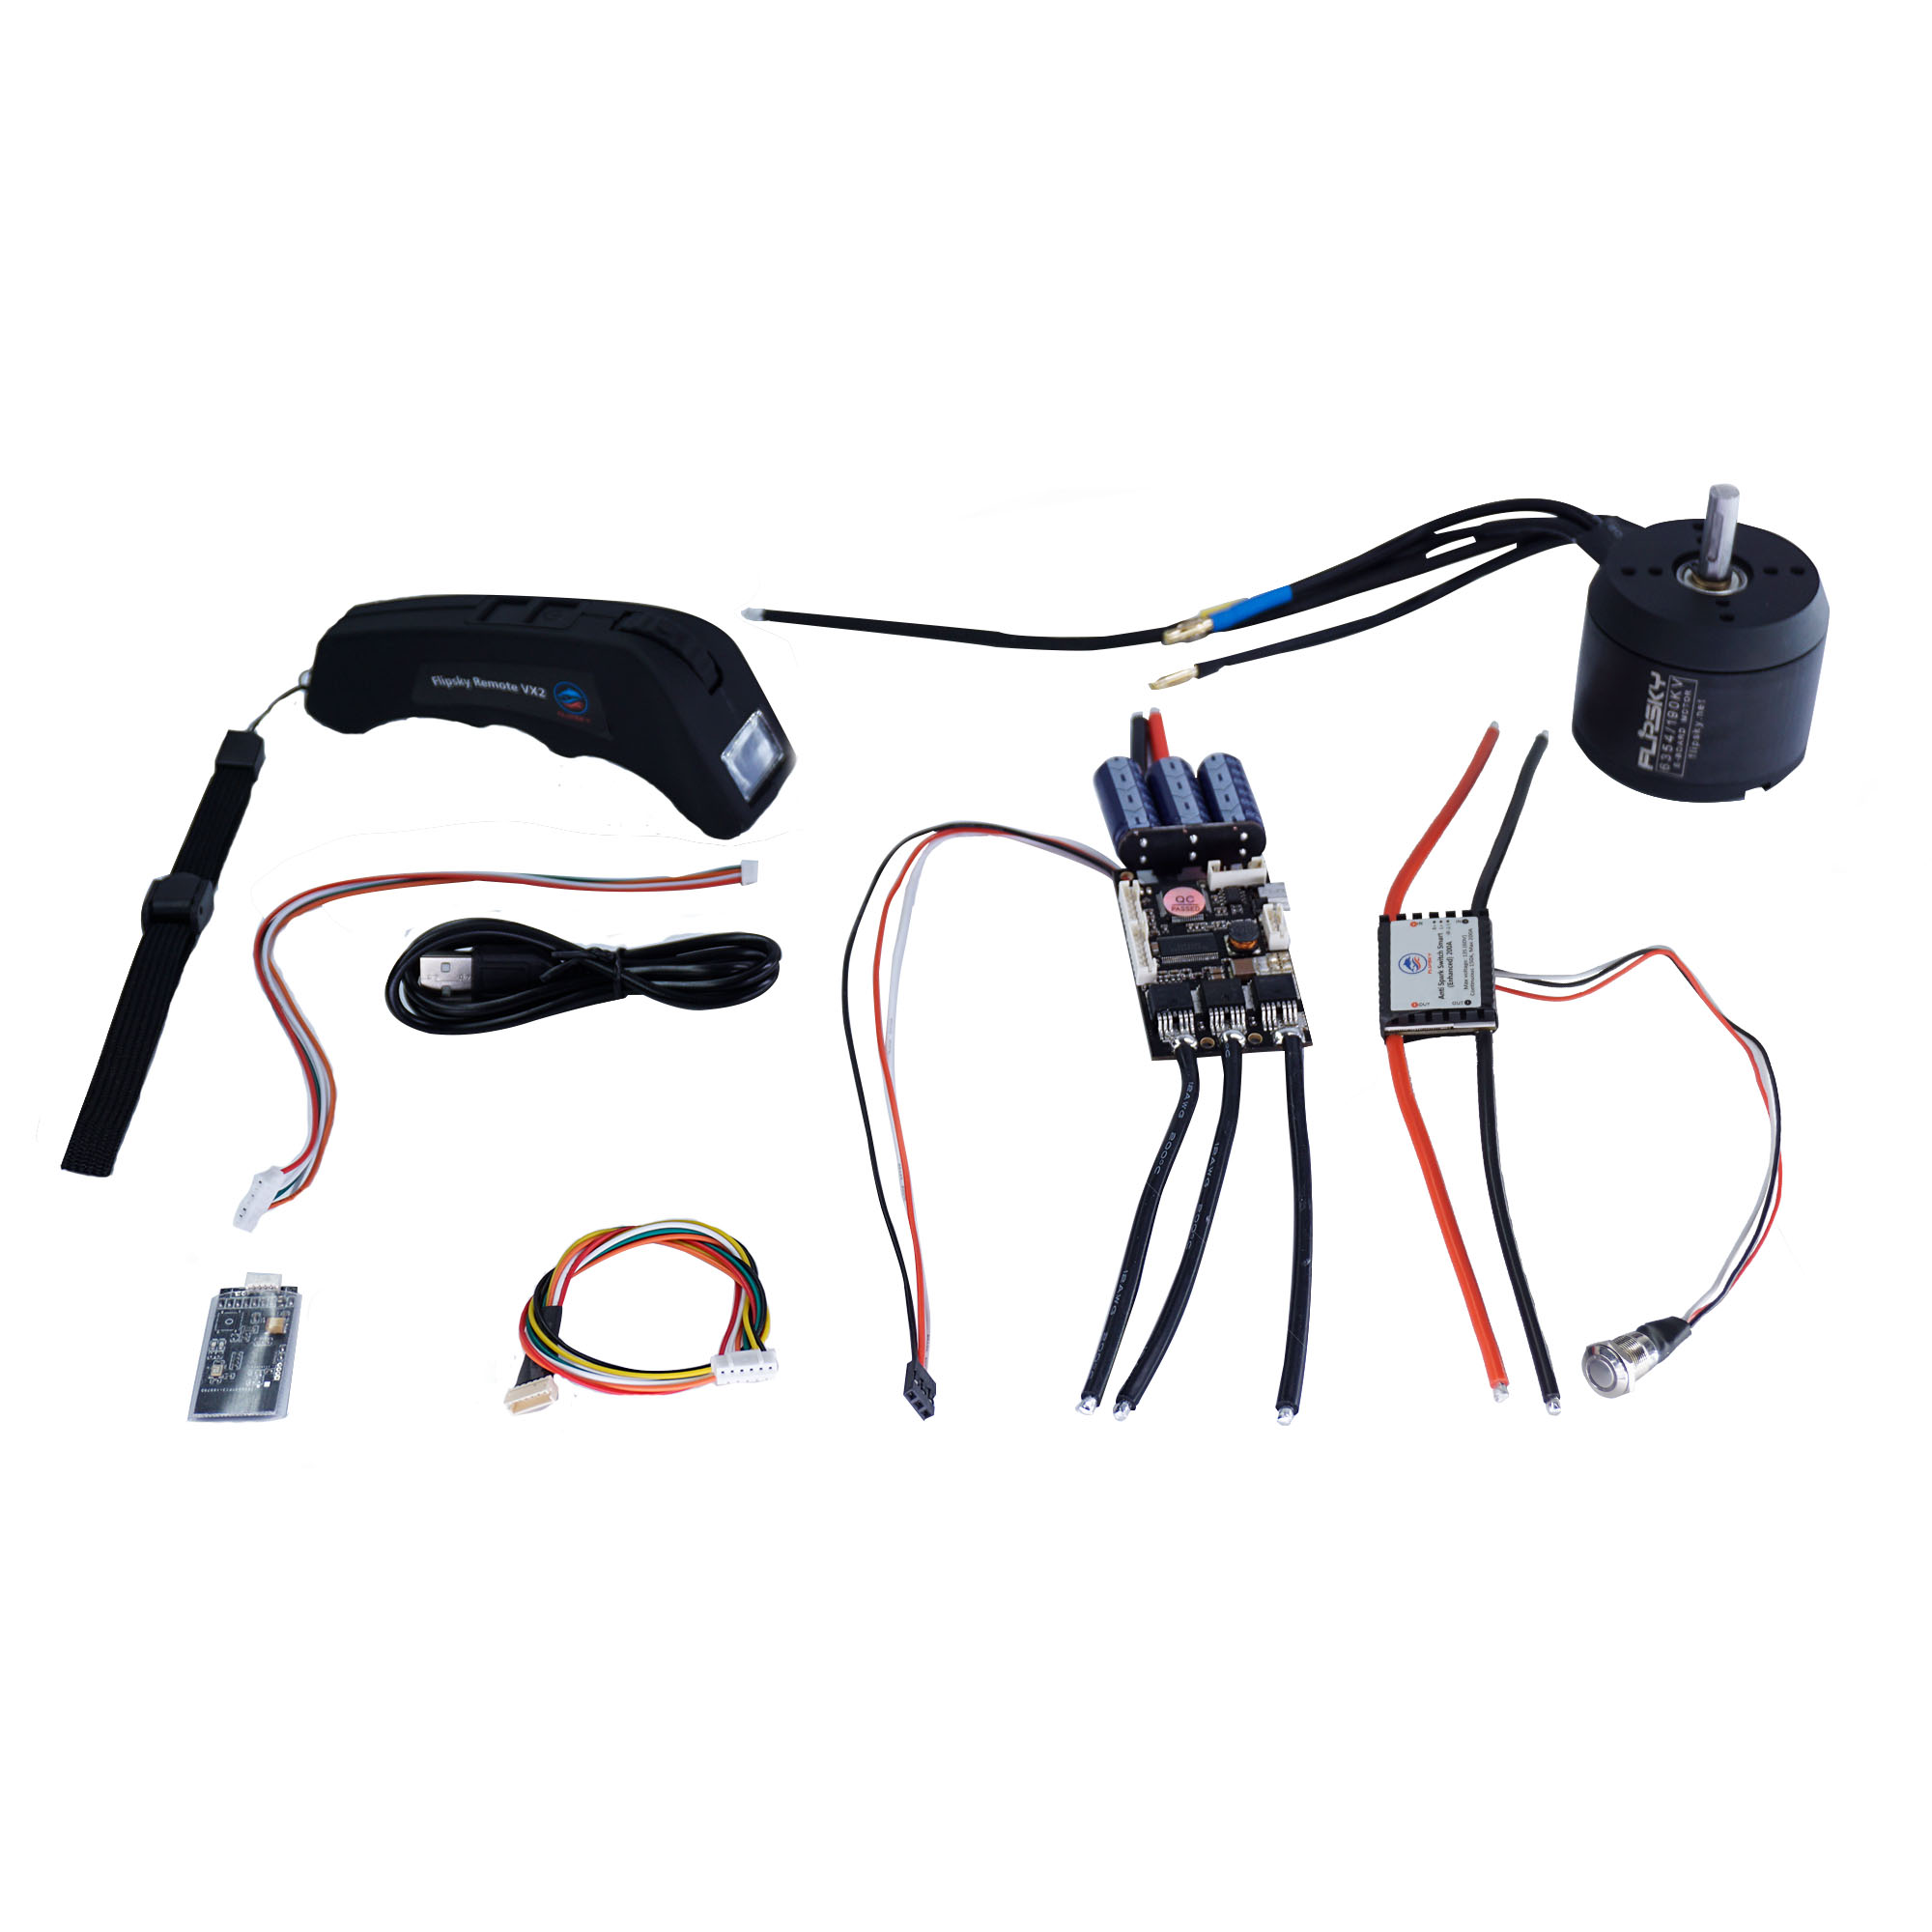 DIY Combo For Electric Skate Board 190KV 6354 Motor + Screen Remote Controller + Smart Switch Electric Speed Controller  S10